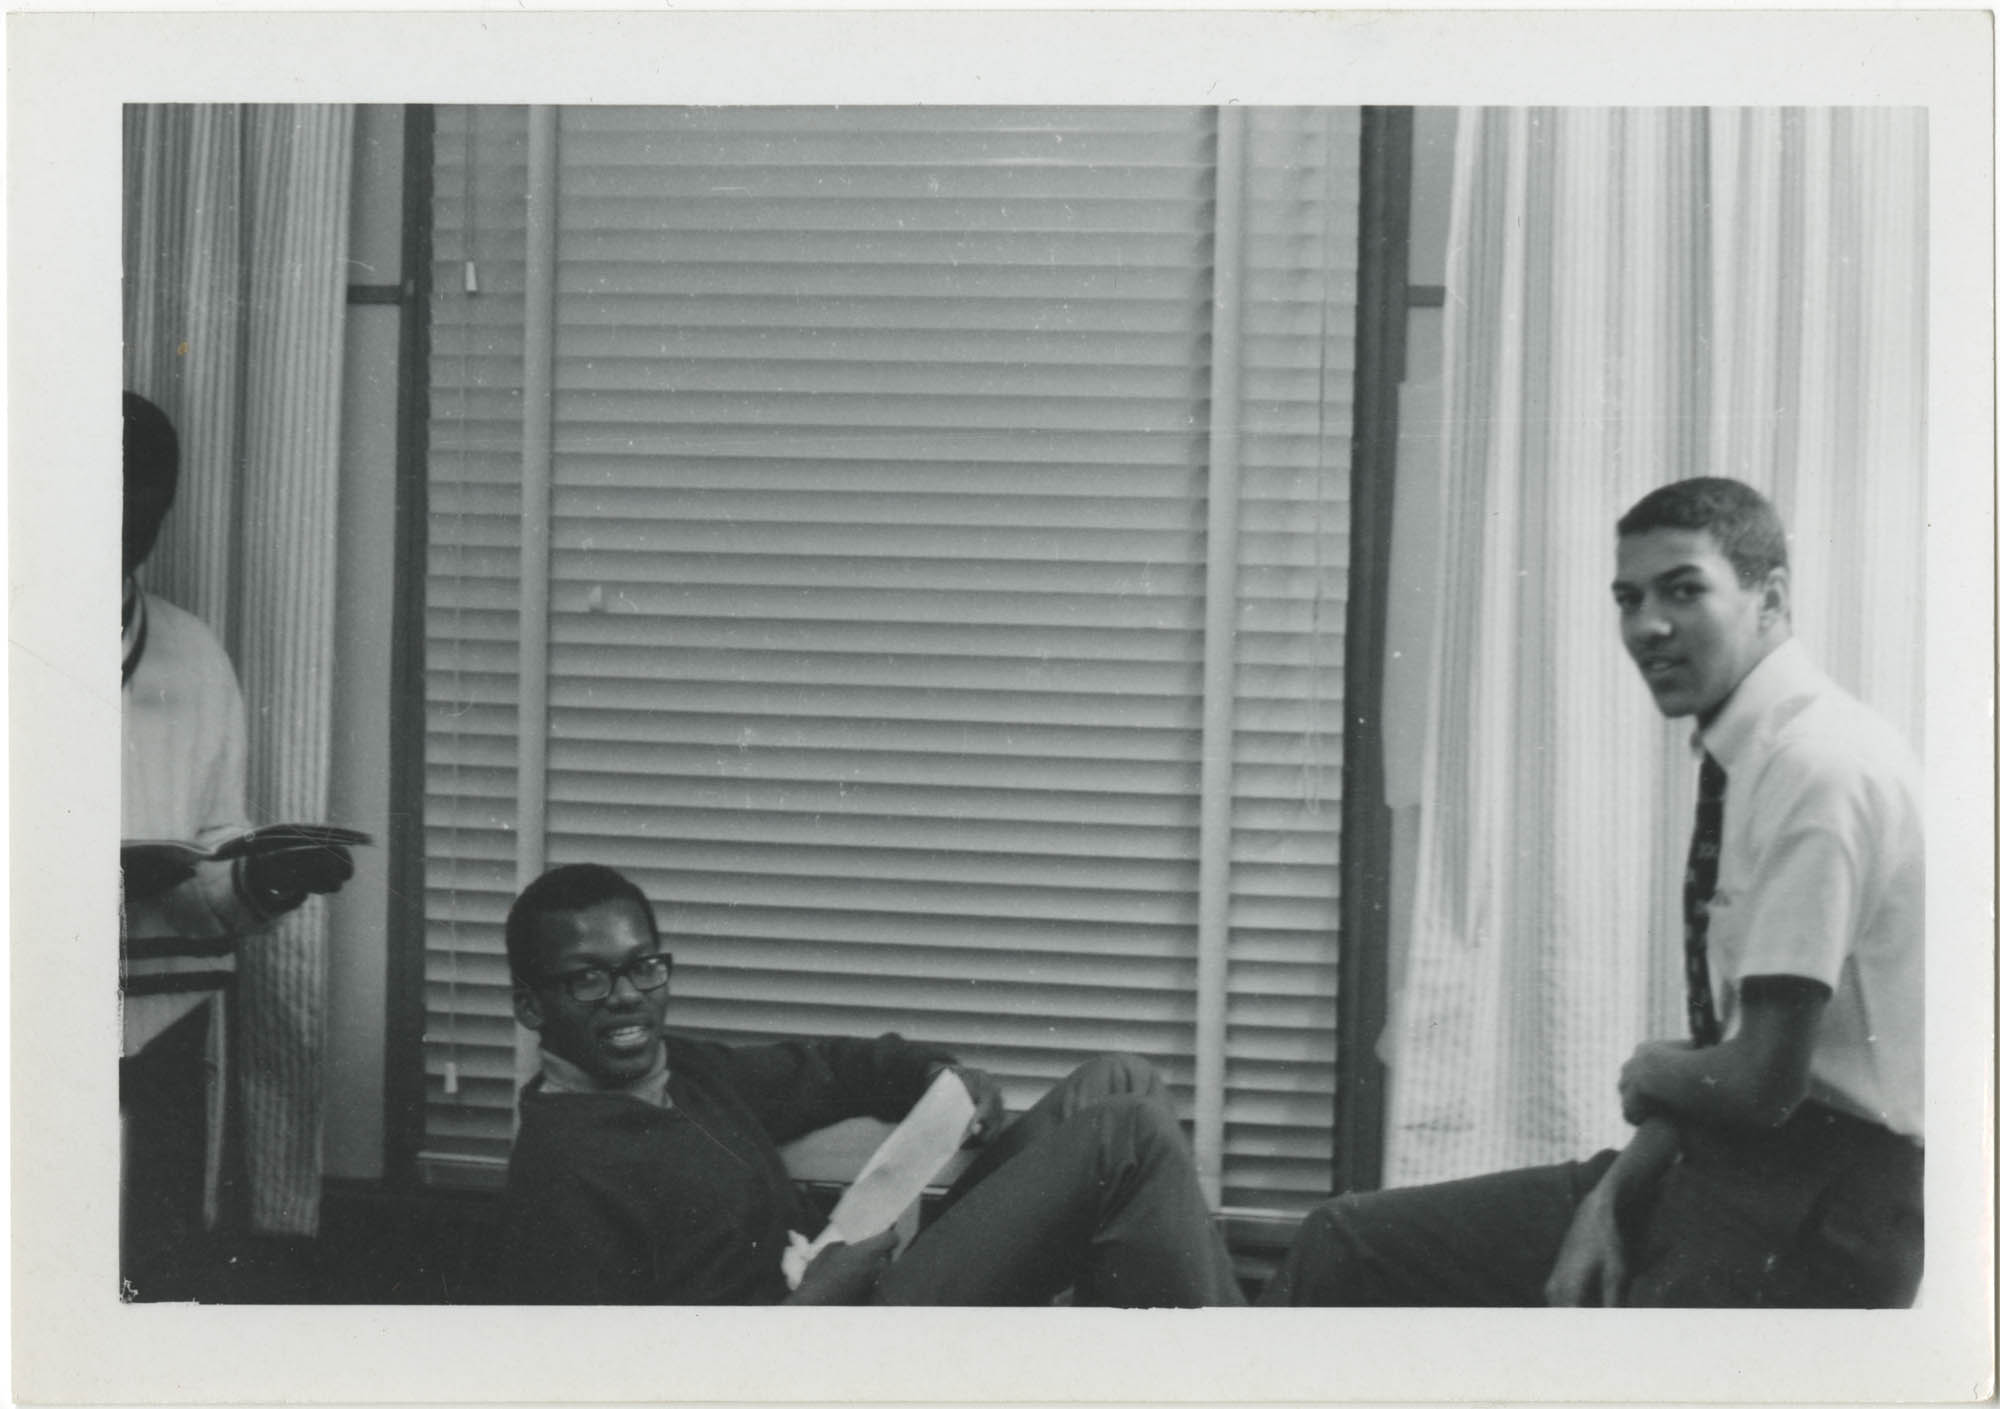 Photograph of Three Young Men